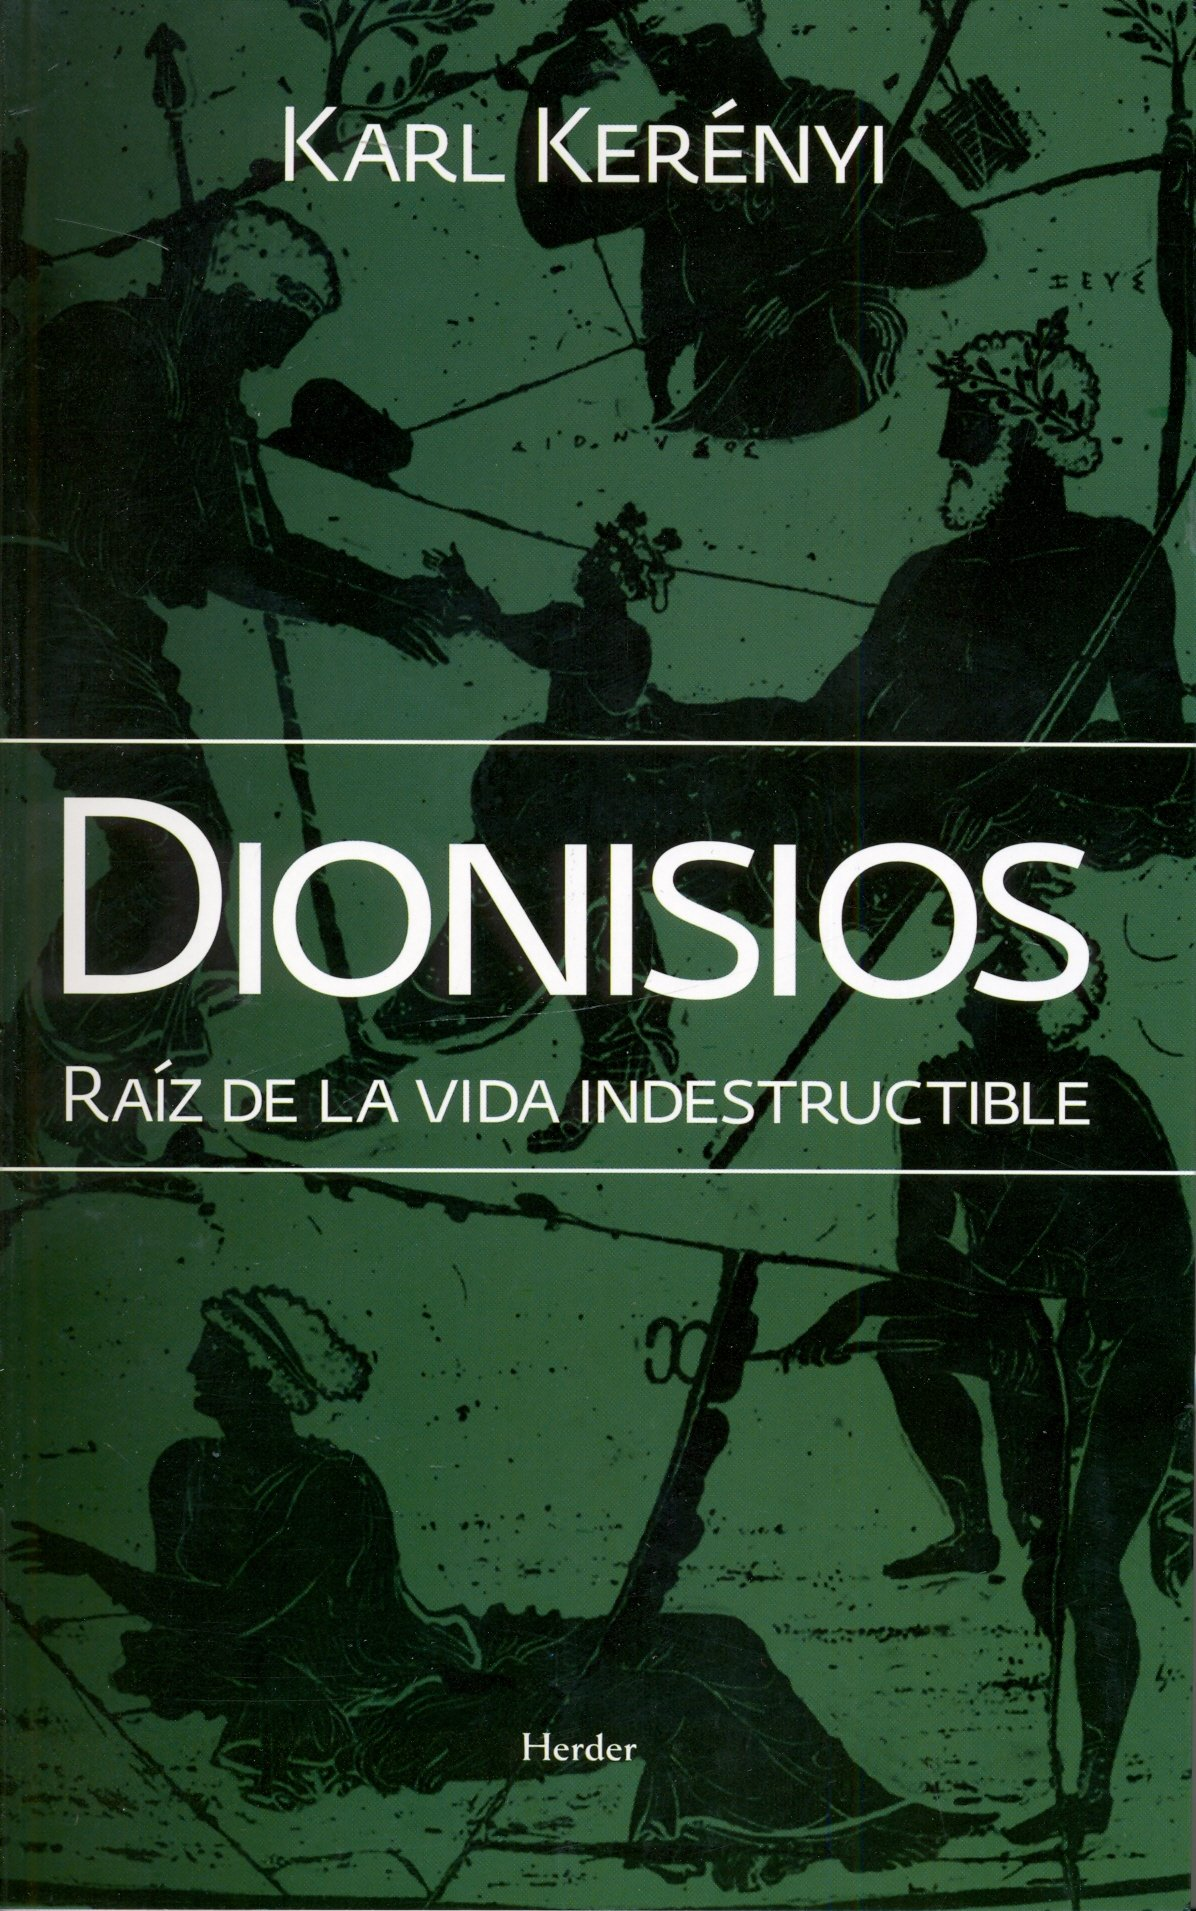 Raíz de la vida indestructible: Amazon.es: Karl Kerényi: Libros